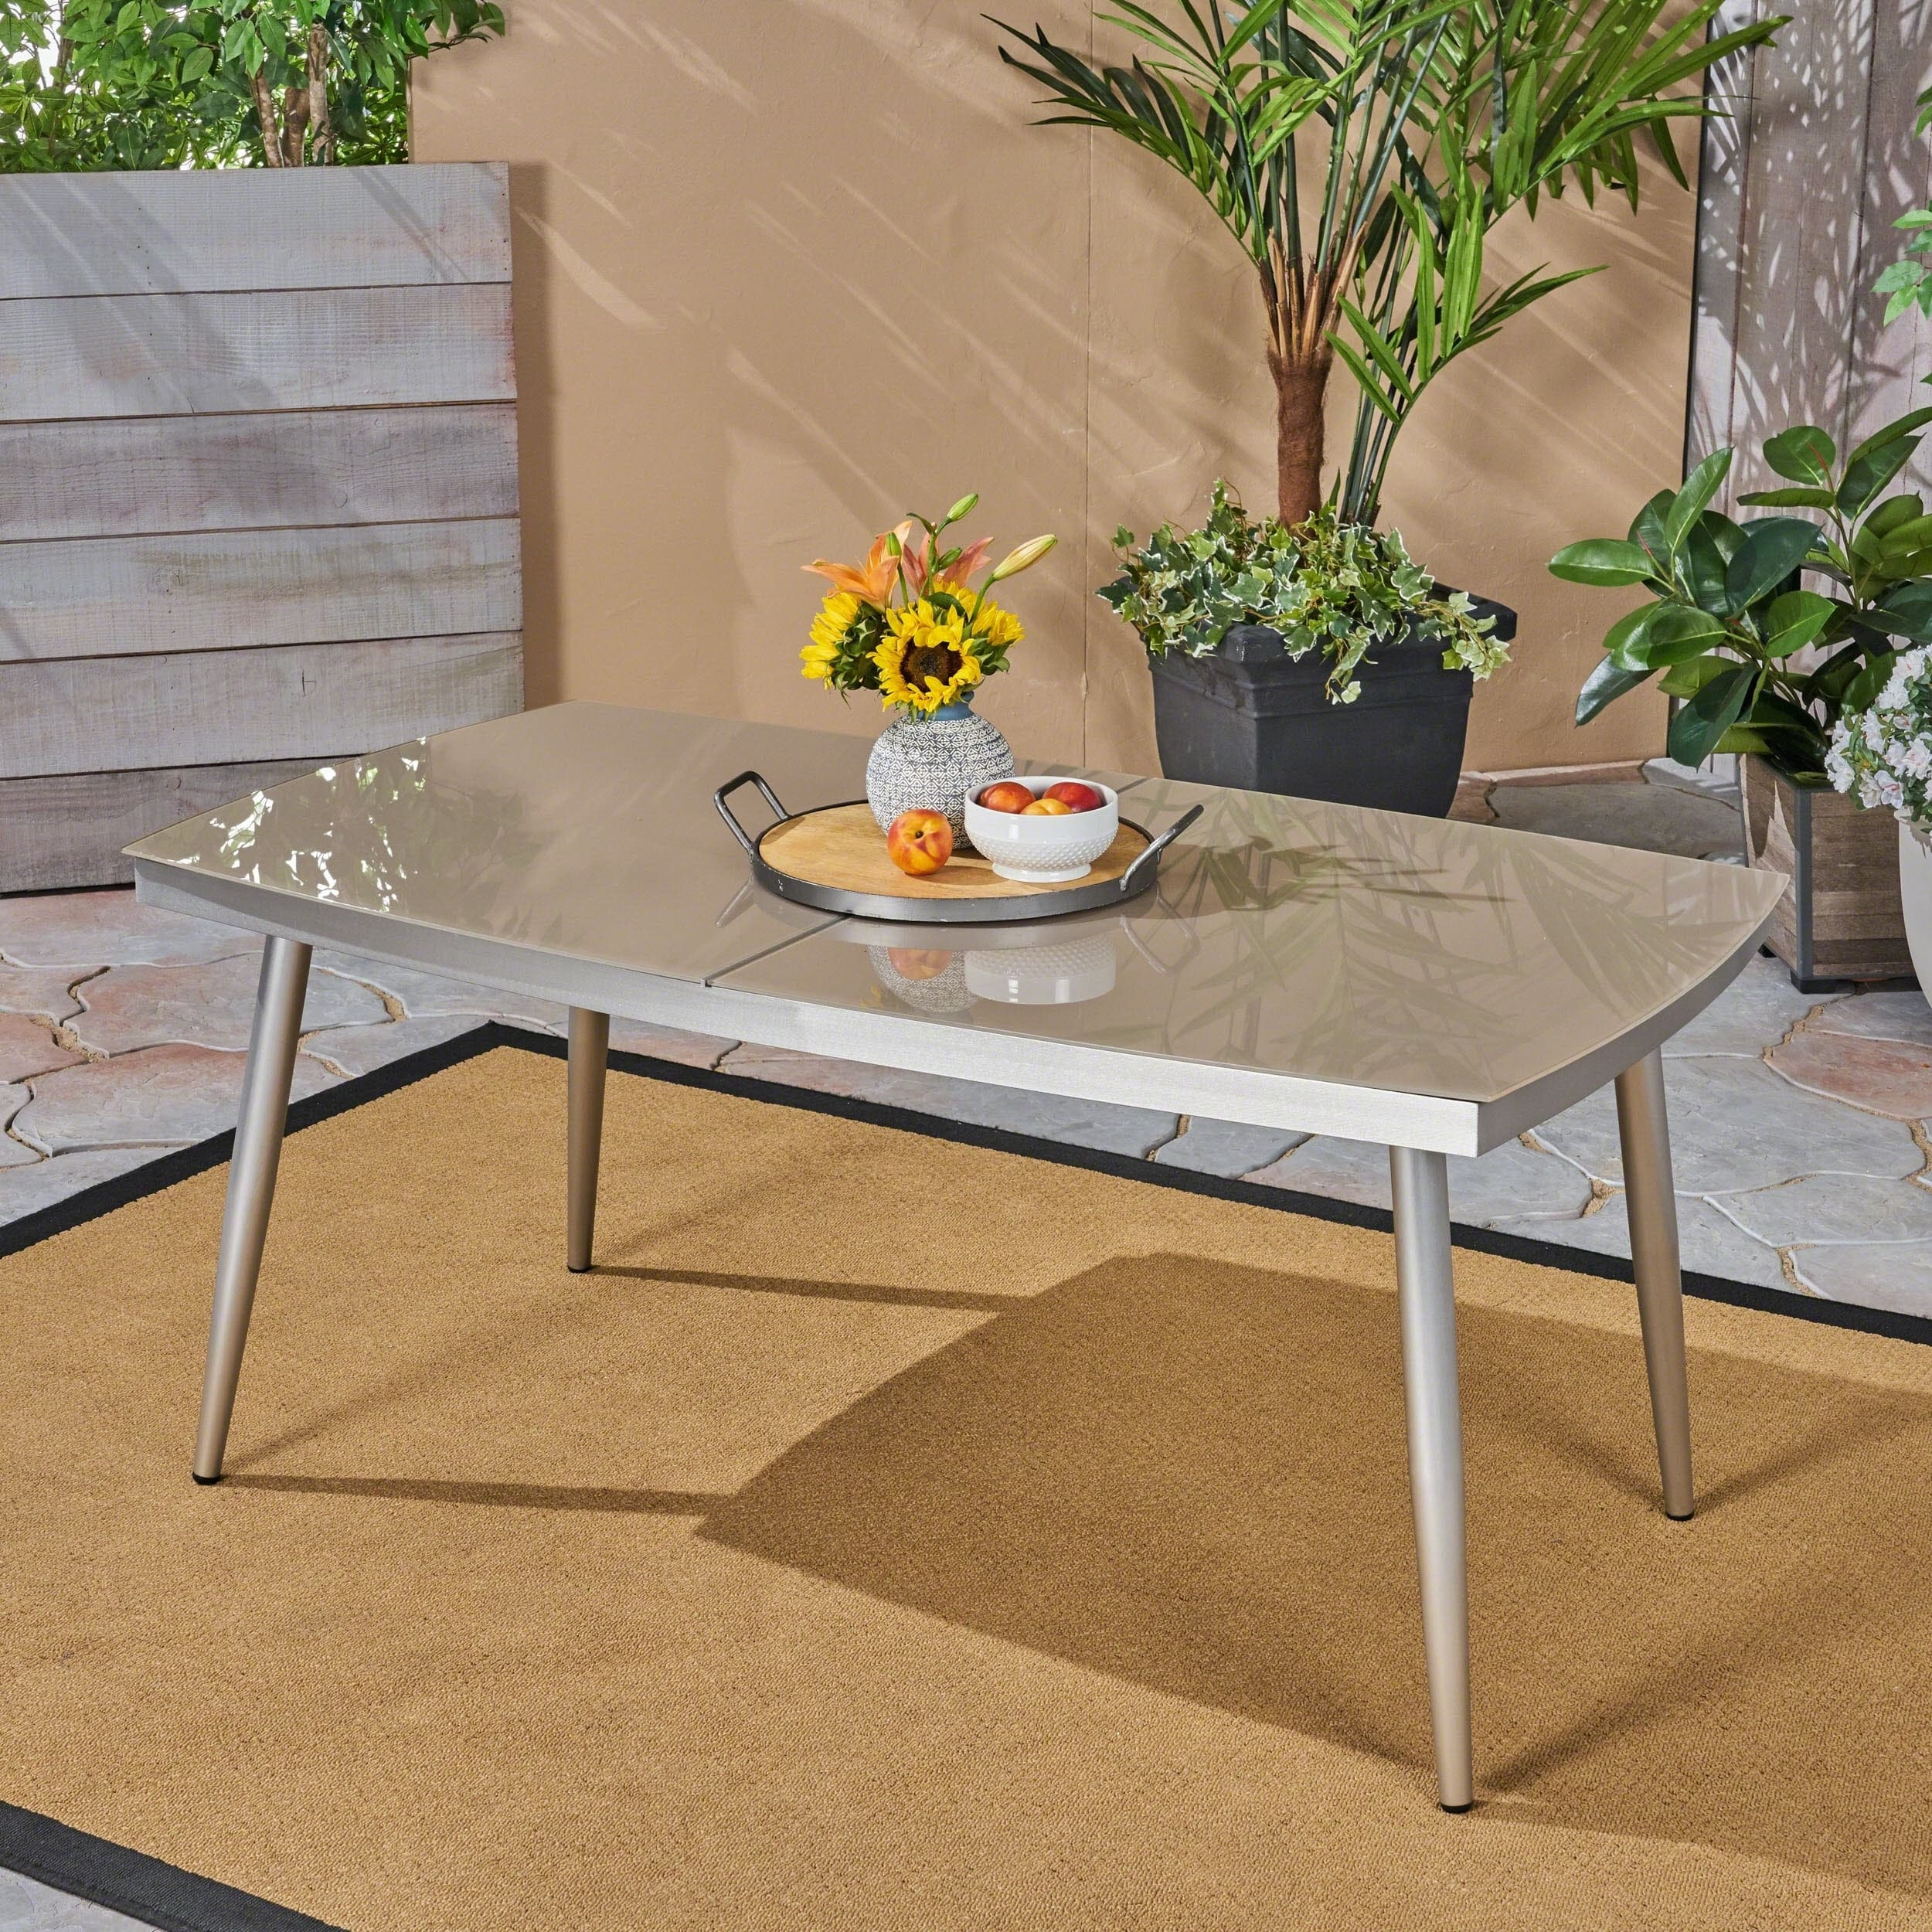 Christopher Knight Home Manchester Outdoor Tempered Glass Dining Table with Aluminum Frame by